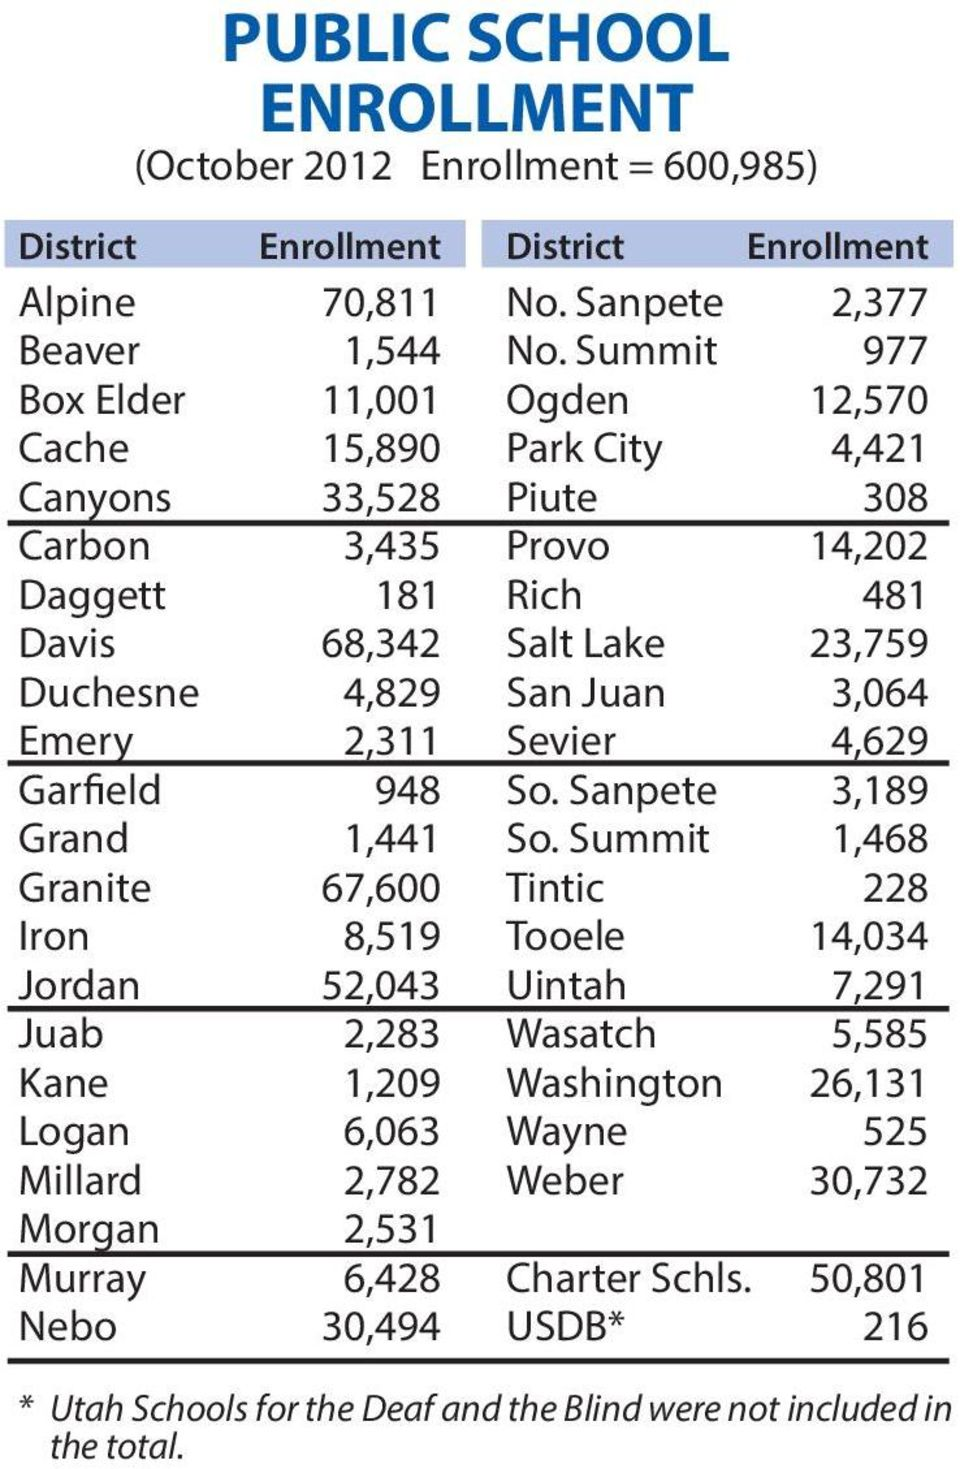 Enrollment No. Sanpete 2,377 No. Summit 977 Ogden 12,570 Park City 4,421 Piute 308 Provo 14,202 Rich 481 Salt Lake 23,759 San Juan 3,064 Sevier 4,629 So. Sanpete 3,189 So.